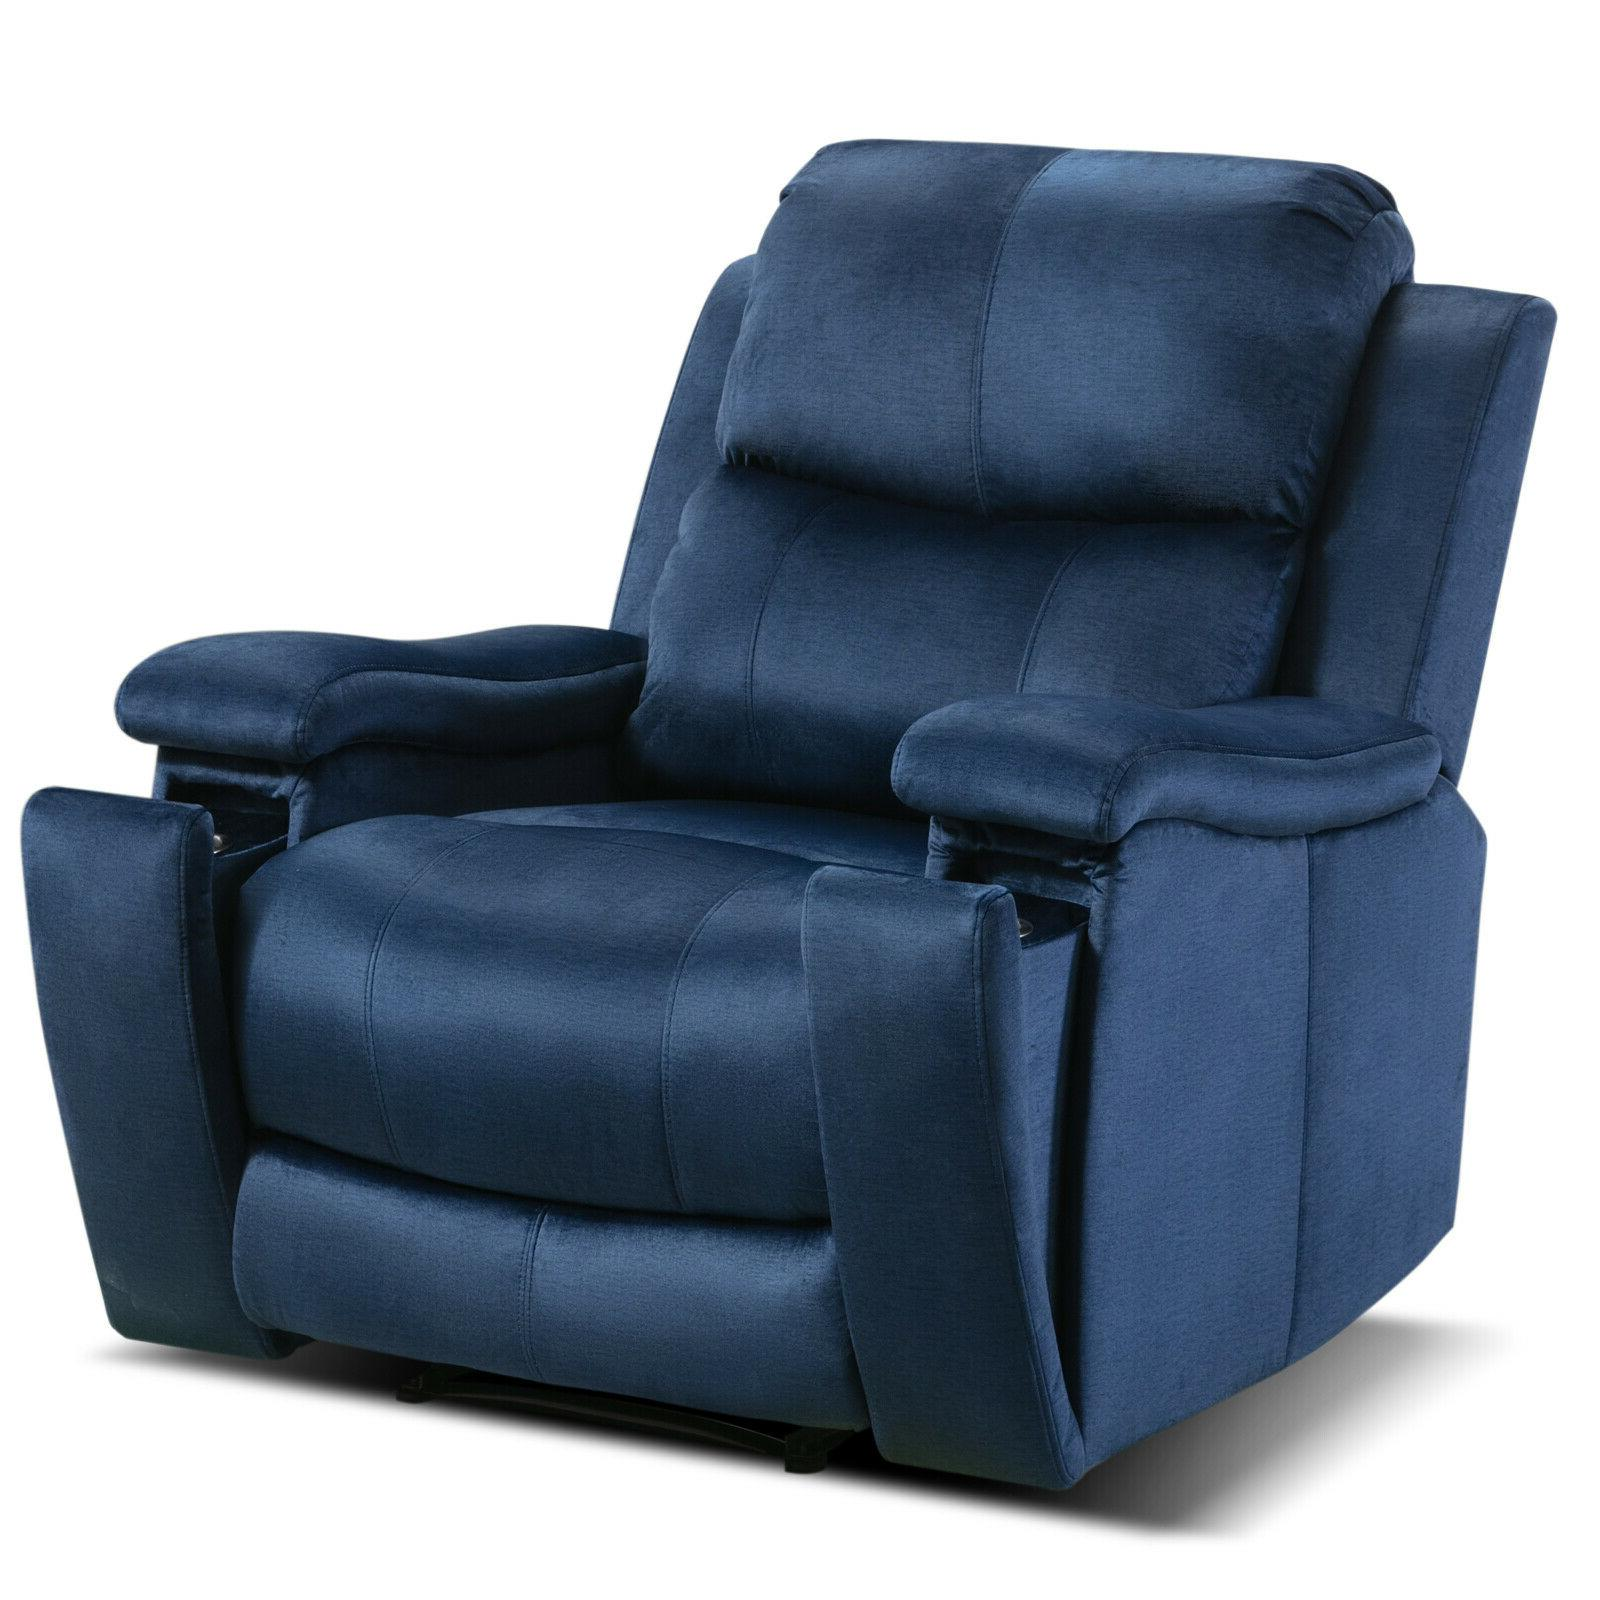 Oversized with Pullable Cup Holder Home Theater Seating Sofa Blue